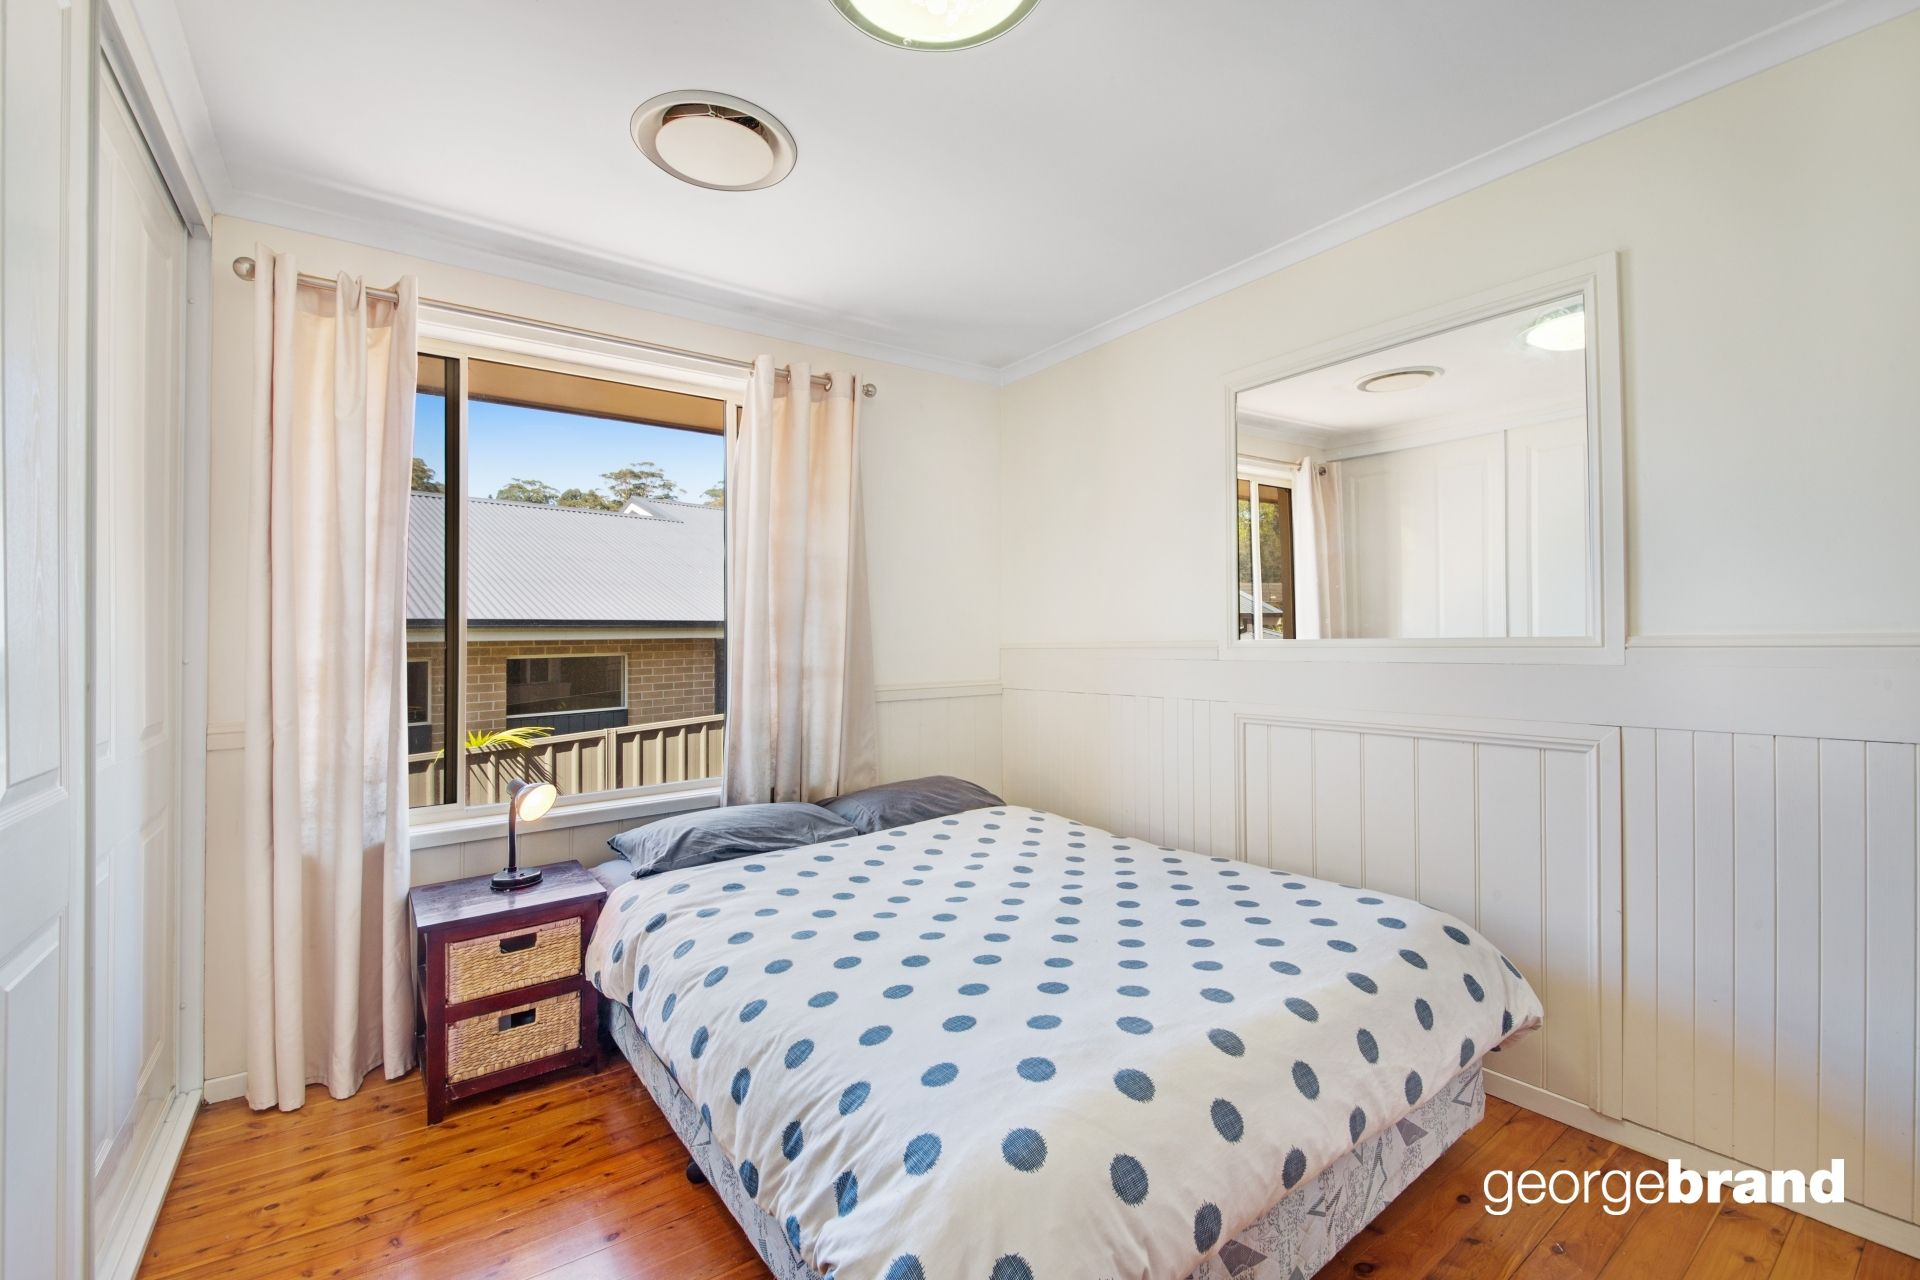 Avoca Beach Real Estate: ROOM FOR THE WHOLE FAMILY